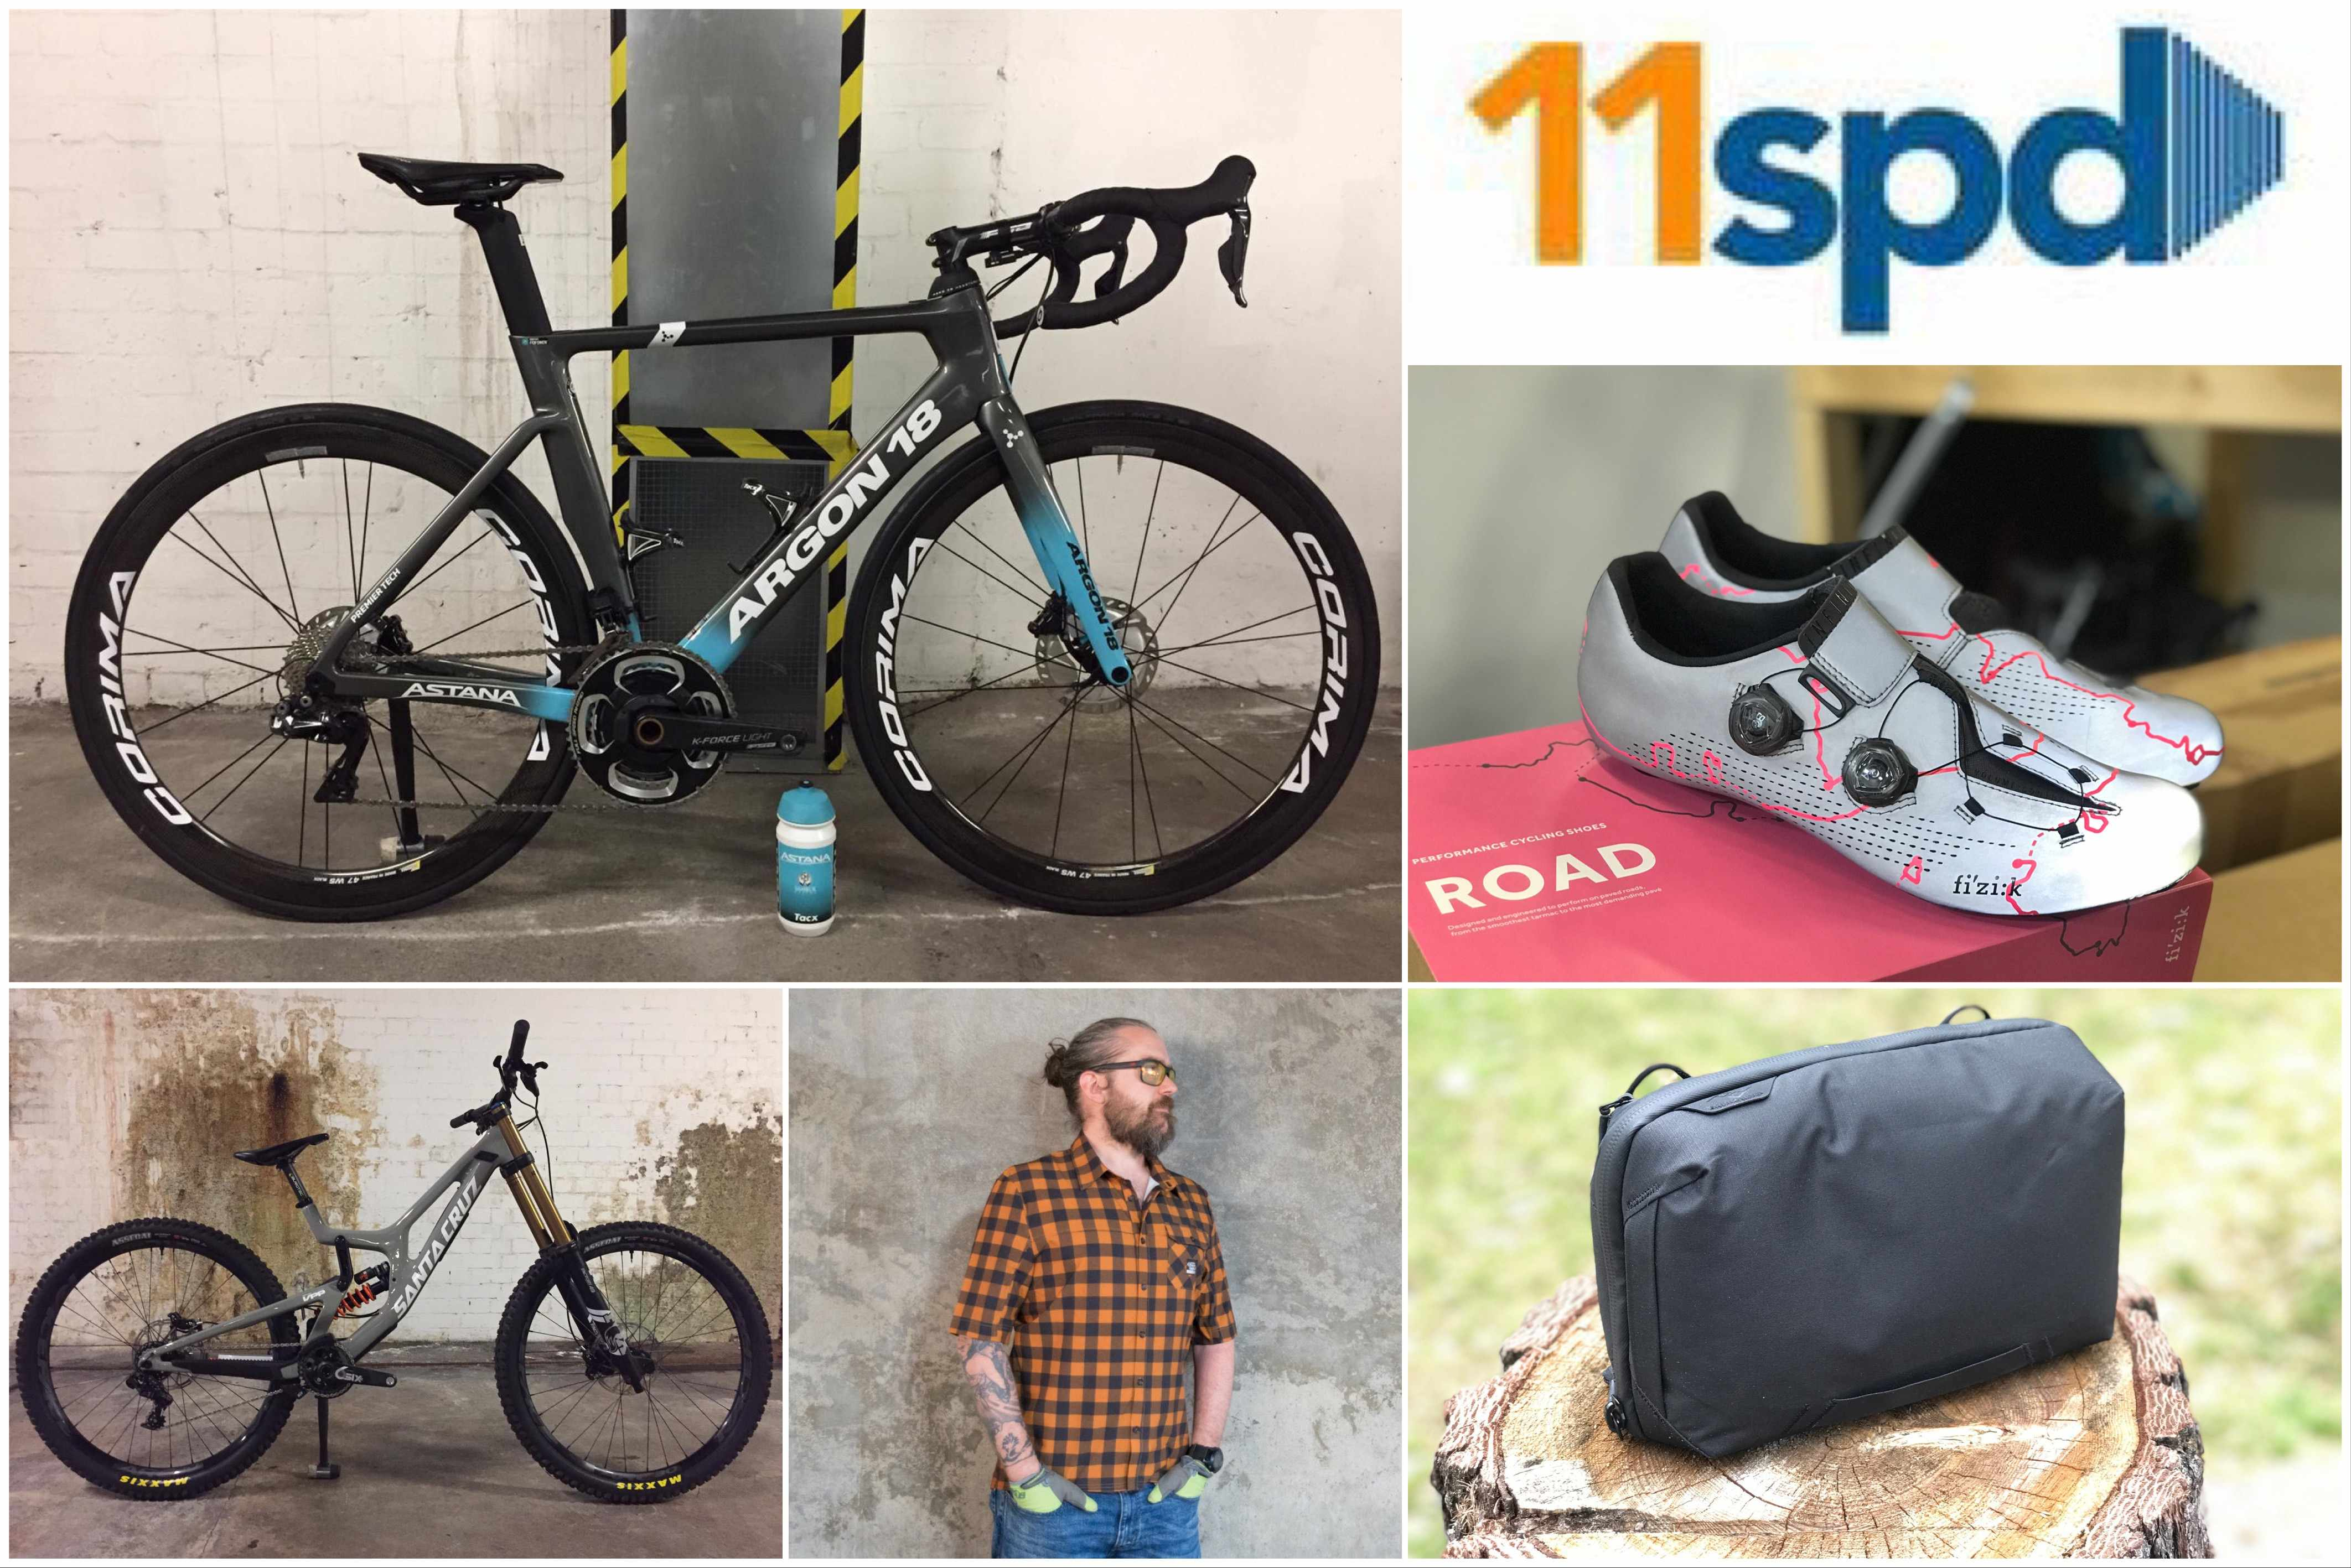 Collage of images including Santa Cruz V10 downhill mountain bike, Fizik shoes, Morvelo shirt, Peak Design bag and Argon 18 Nitrogen Disc road bike